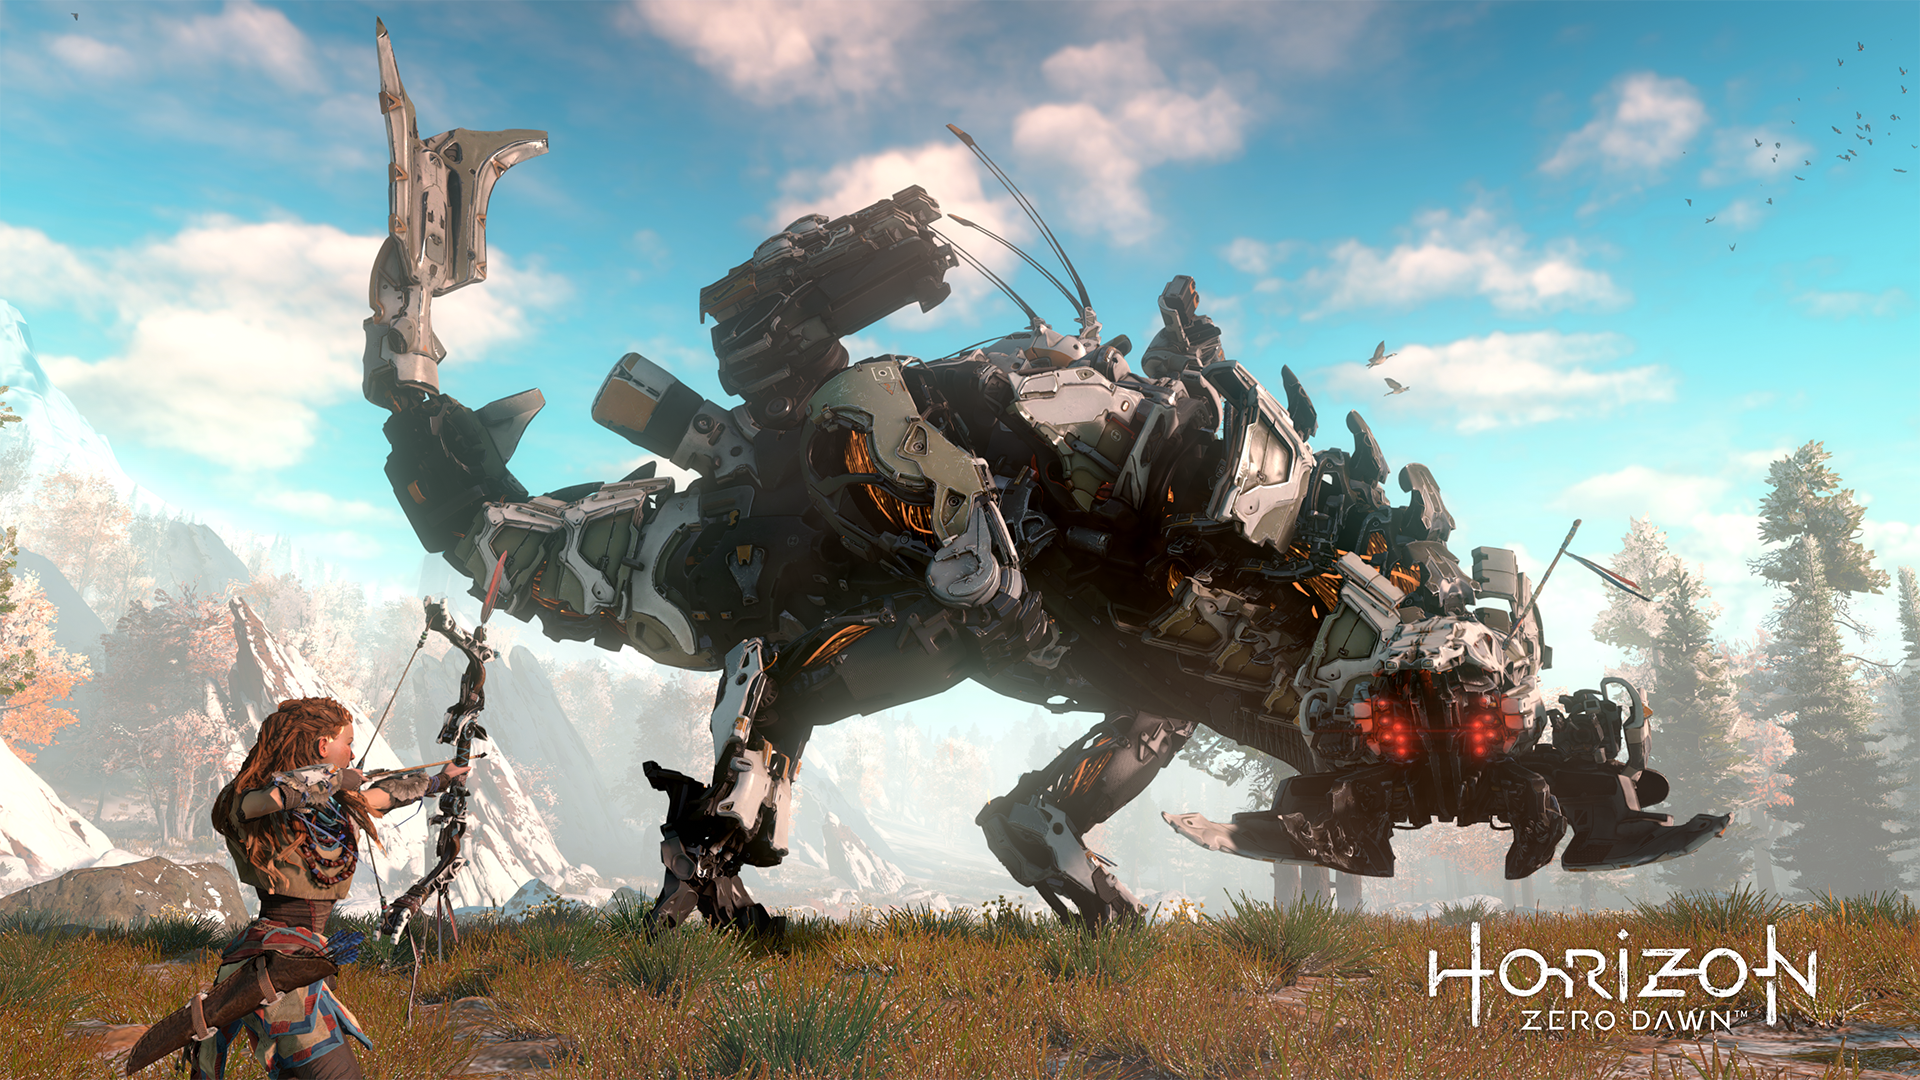 Aloy challenges a Thunderjaw, one of the more fearsome machines you'll face.